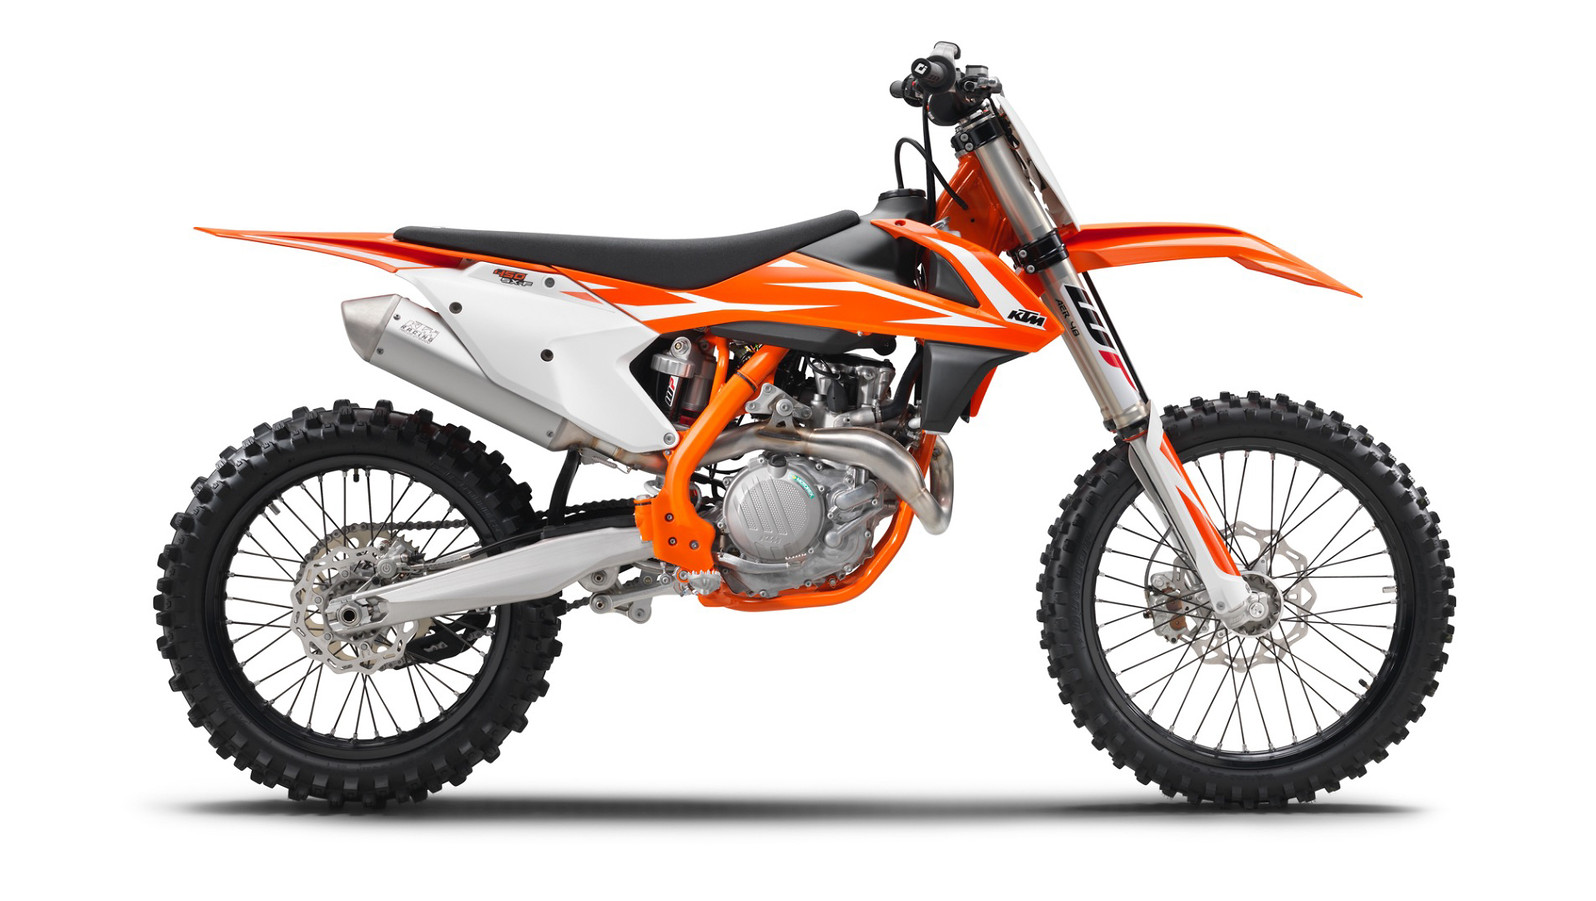 2018 ktm 450 sx f reviews comparisons specs. Black Bedroom Furniture Sets. Home Design Ideas